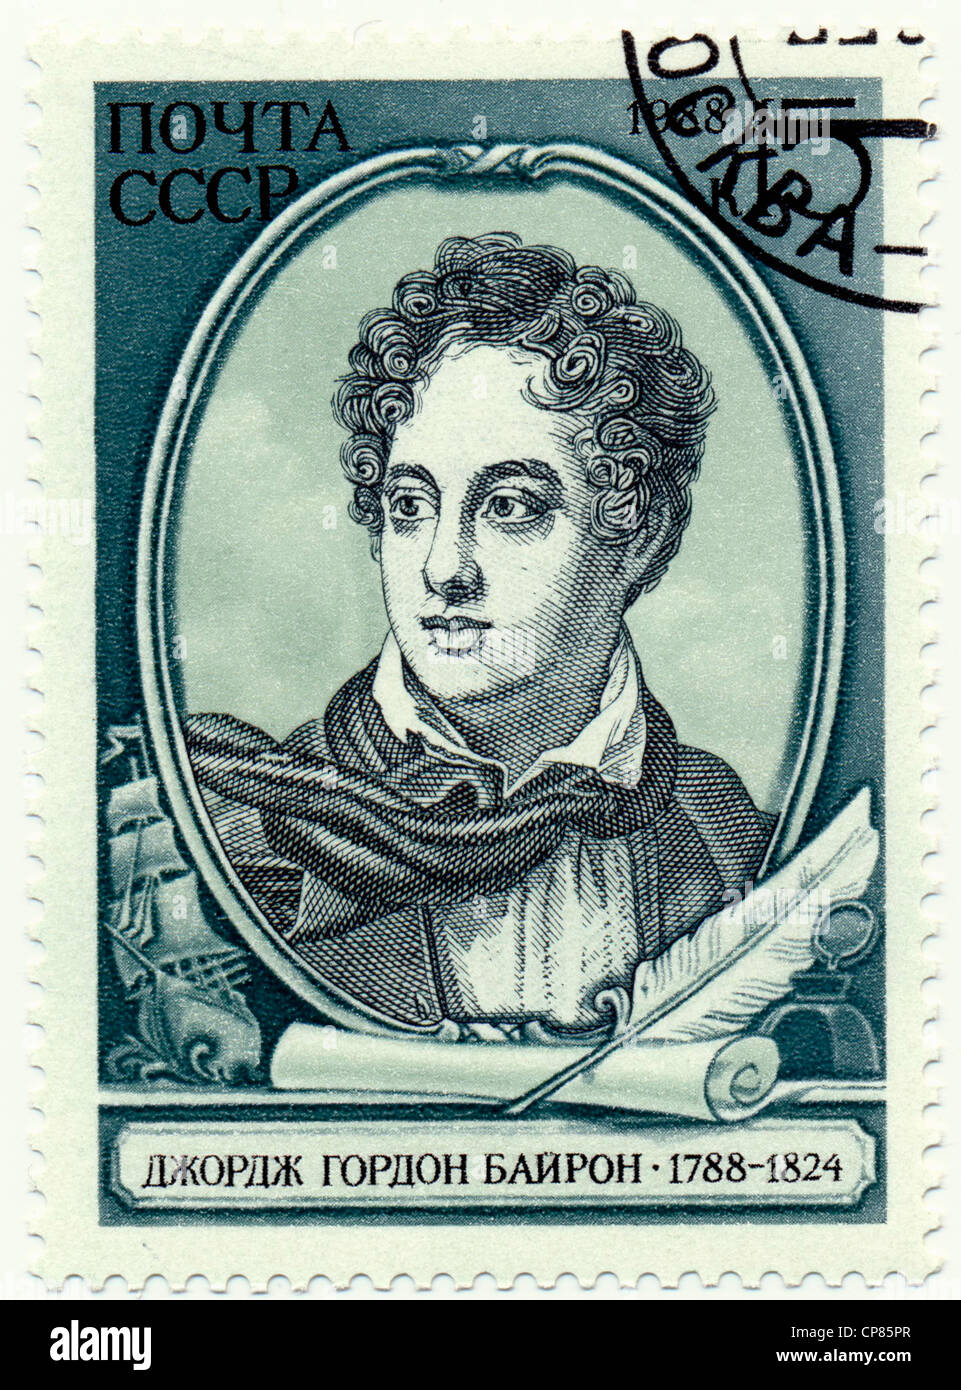 Historic postage stamps of the USSR, Historische Briefmarke, der englische Dichter Lord George Gordon Byron, 1988, - Stock Image